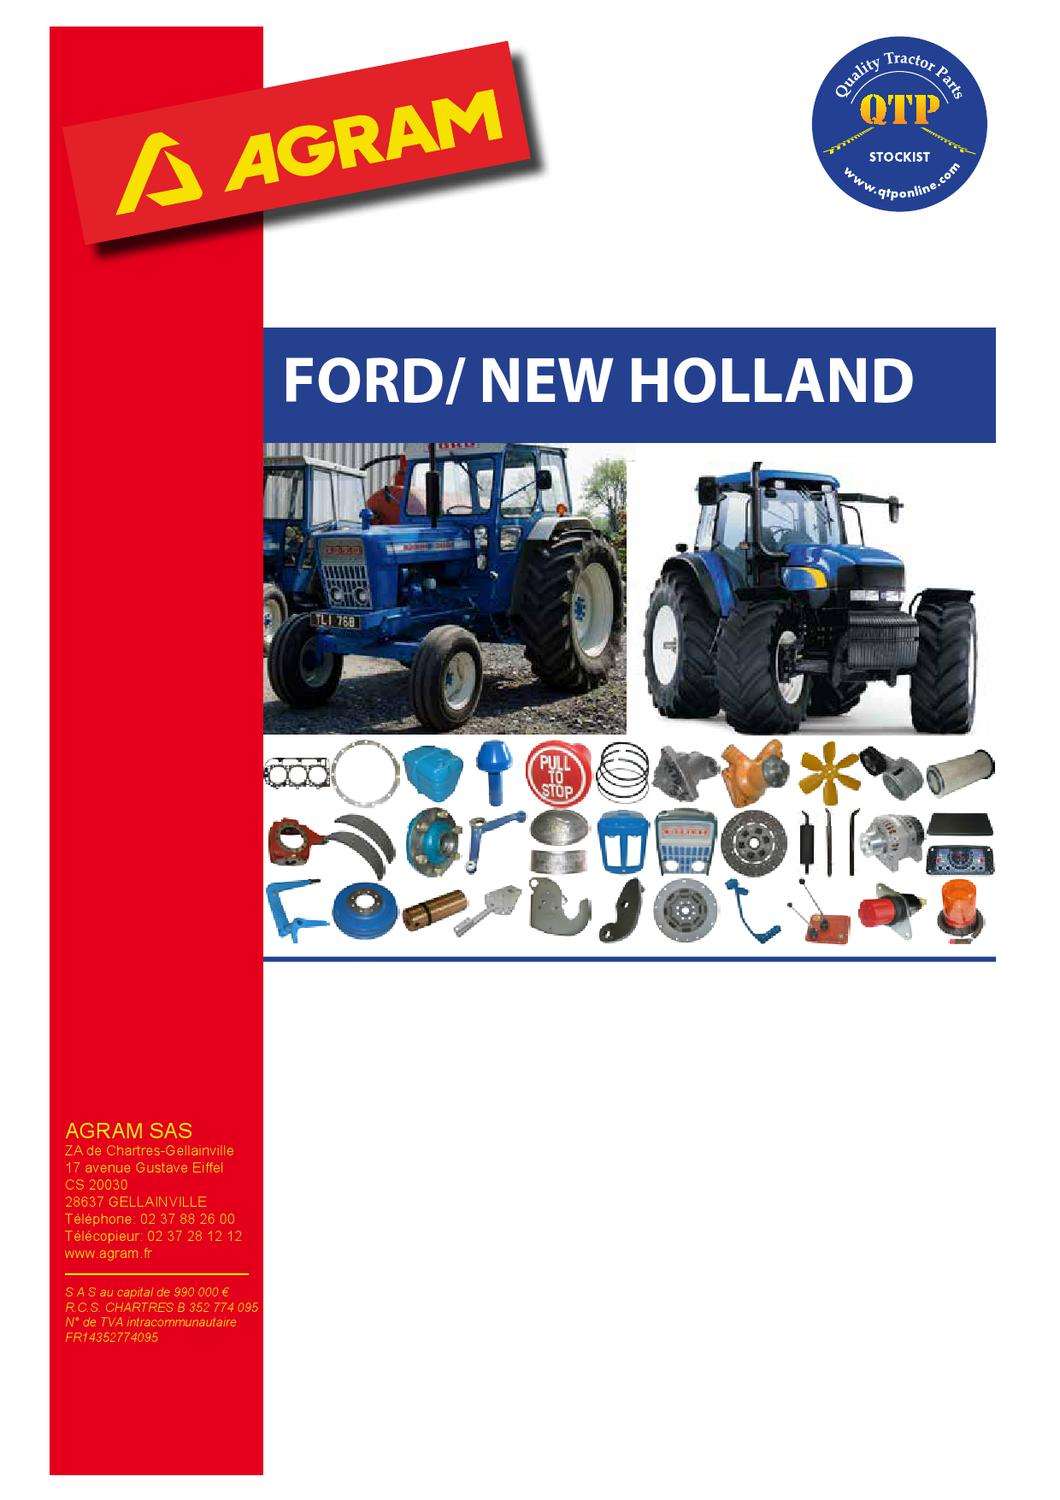 Ford Agram By Quality Tractor Parts Issuu John Deere 2150 Wiring Harness